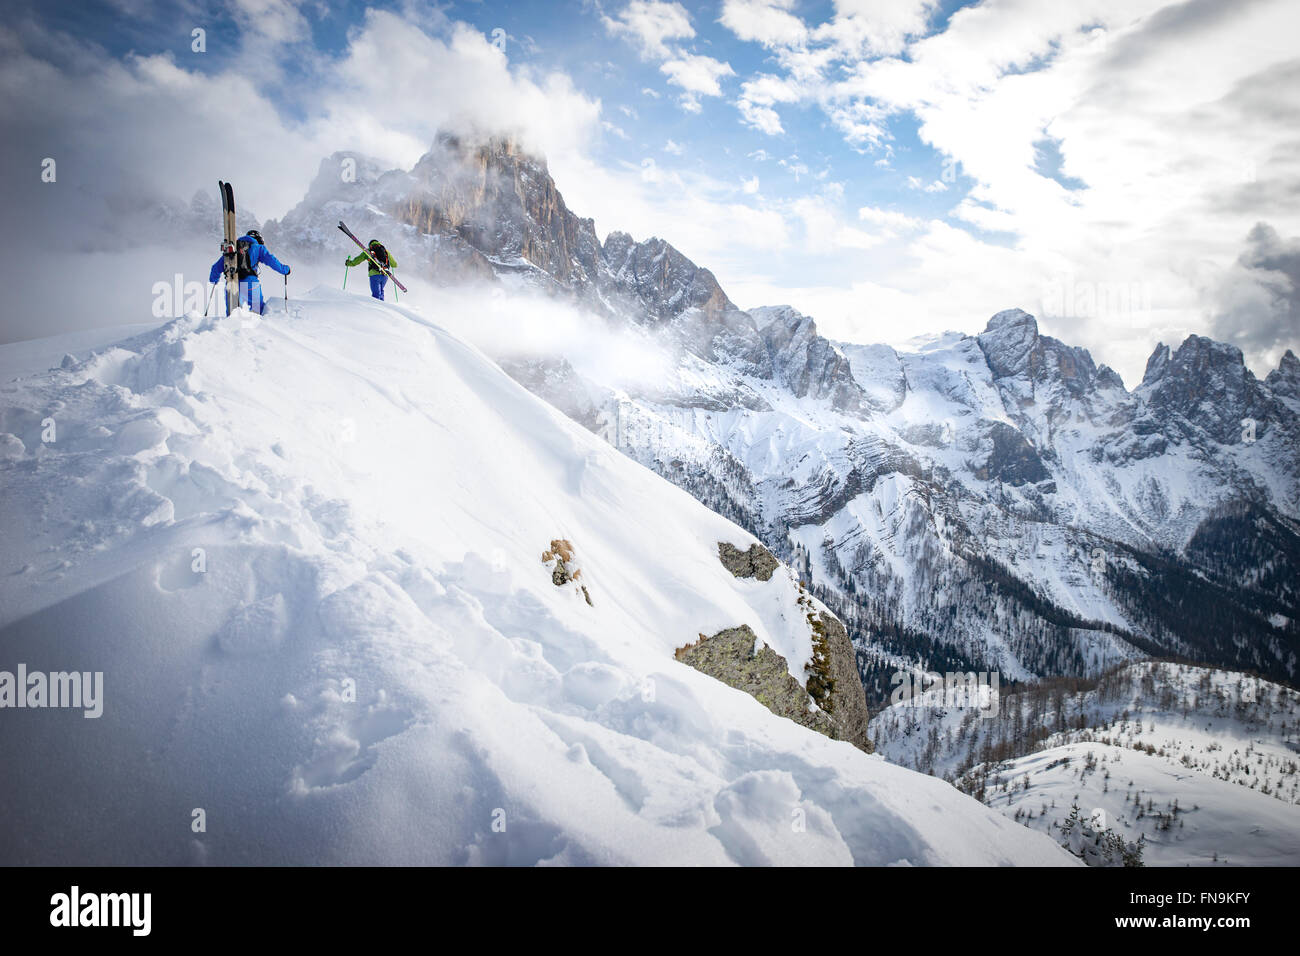 Two men Powder Skiing in Dolomites, Italy - Stock Image